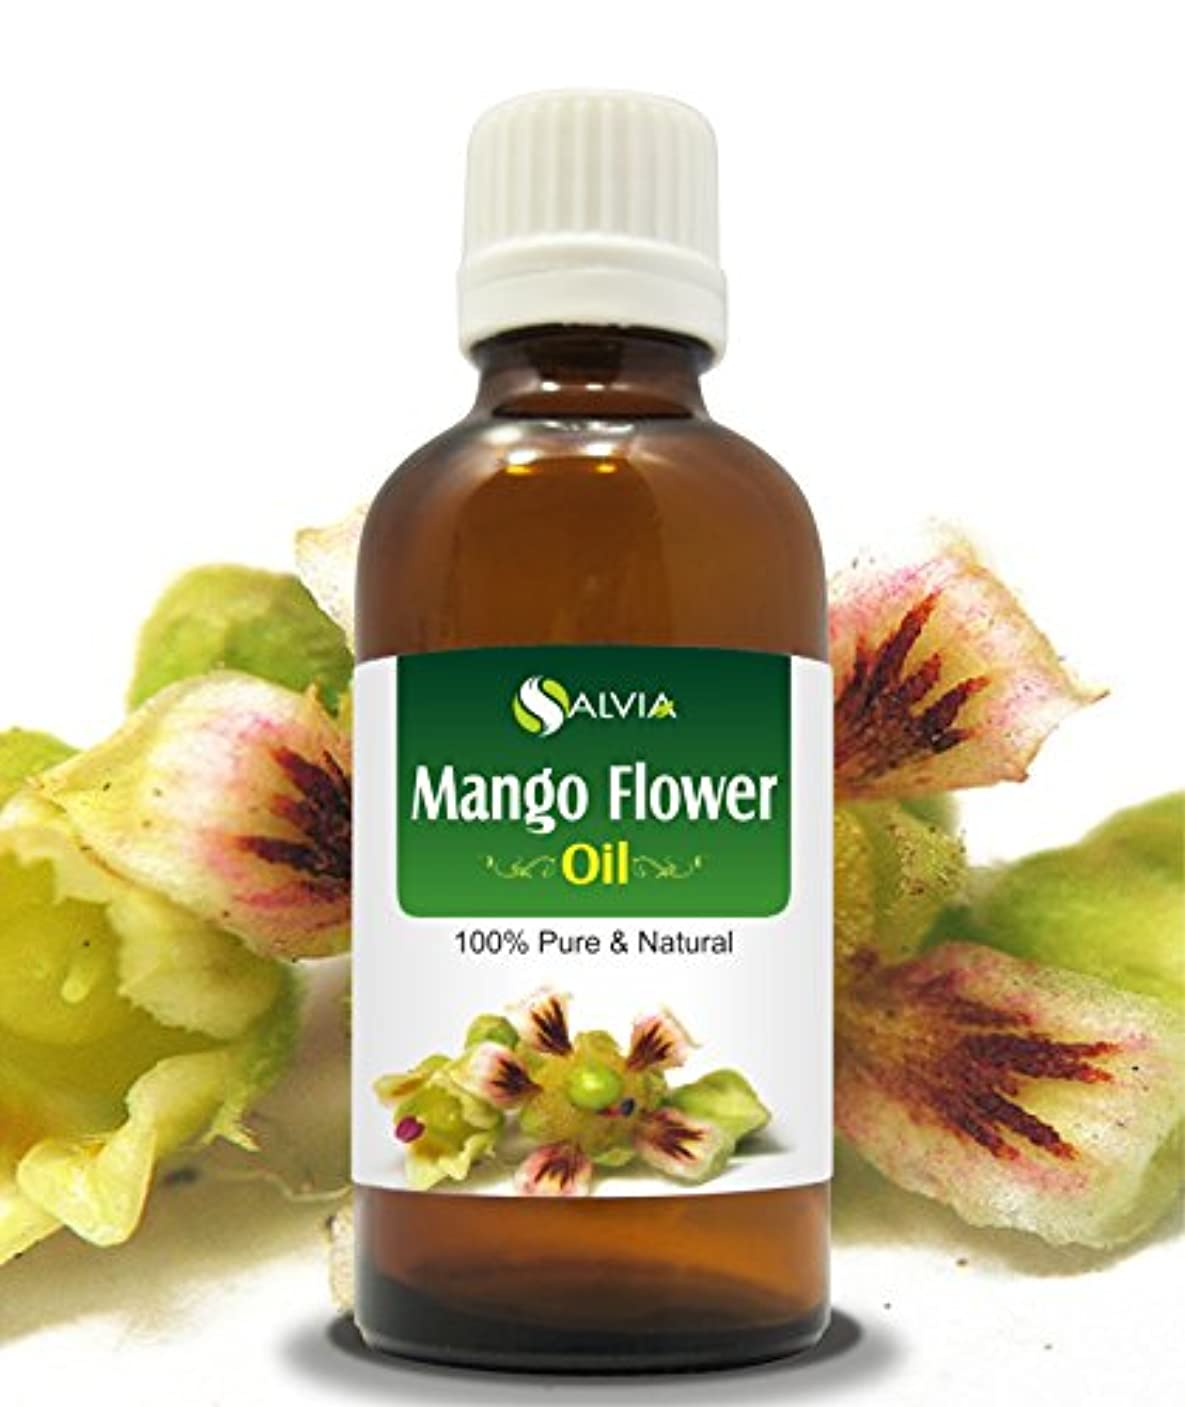 バドミントン八百屋さん狂ったMANGO FLOWERS OIL 100% NATURAL PURE UNDILUTED UNCUT ESSENTIAL OIL 100ML